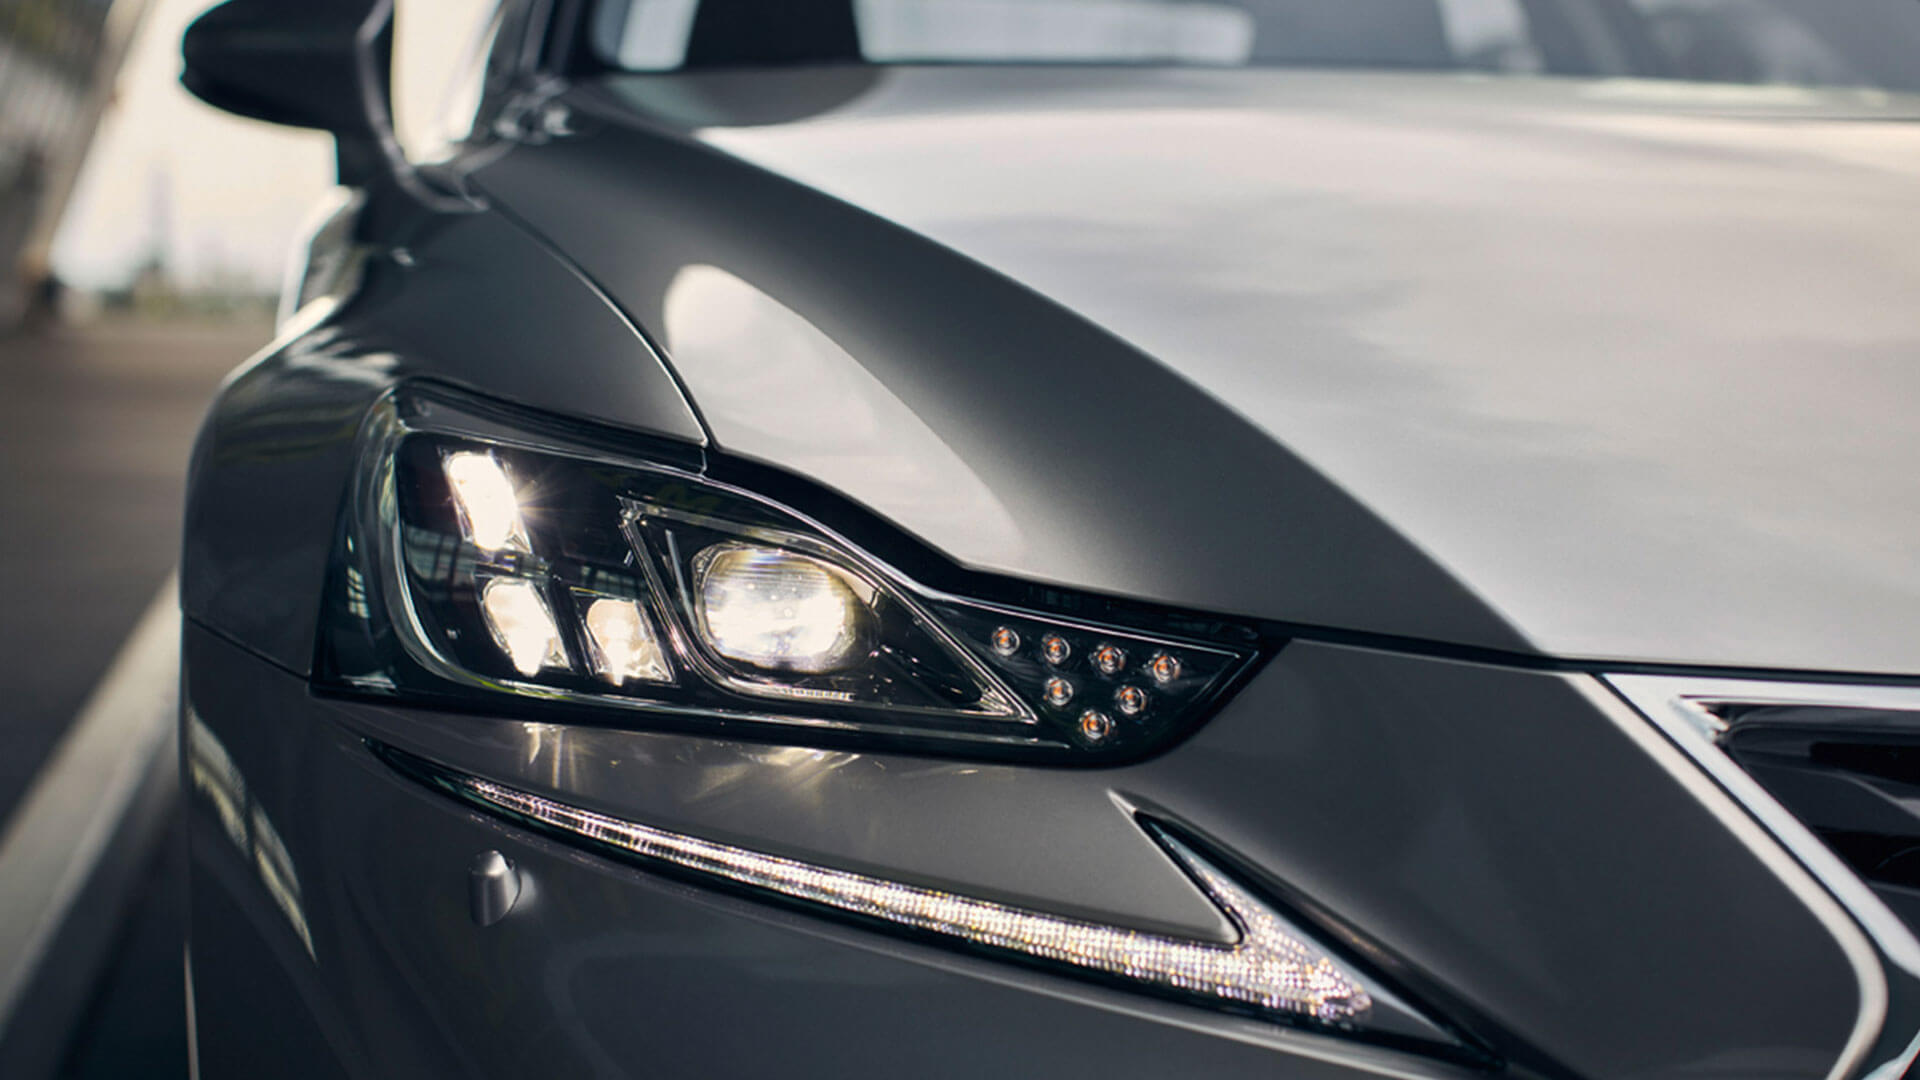 2017 lexus is 300h features led headlights